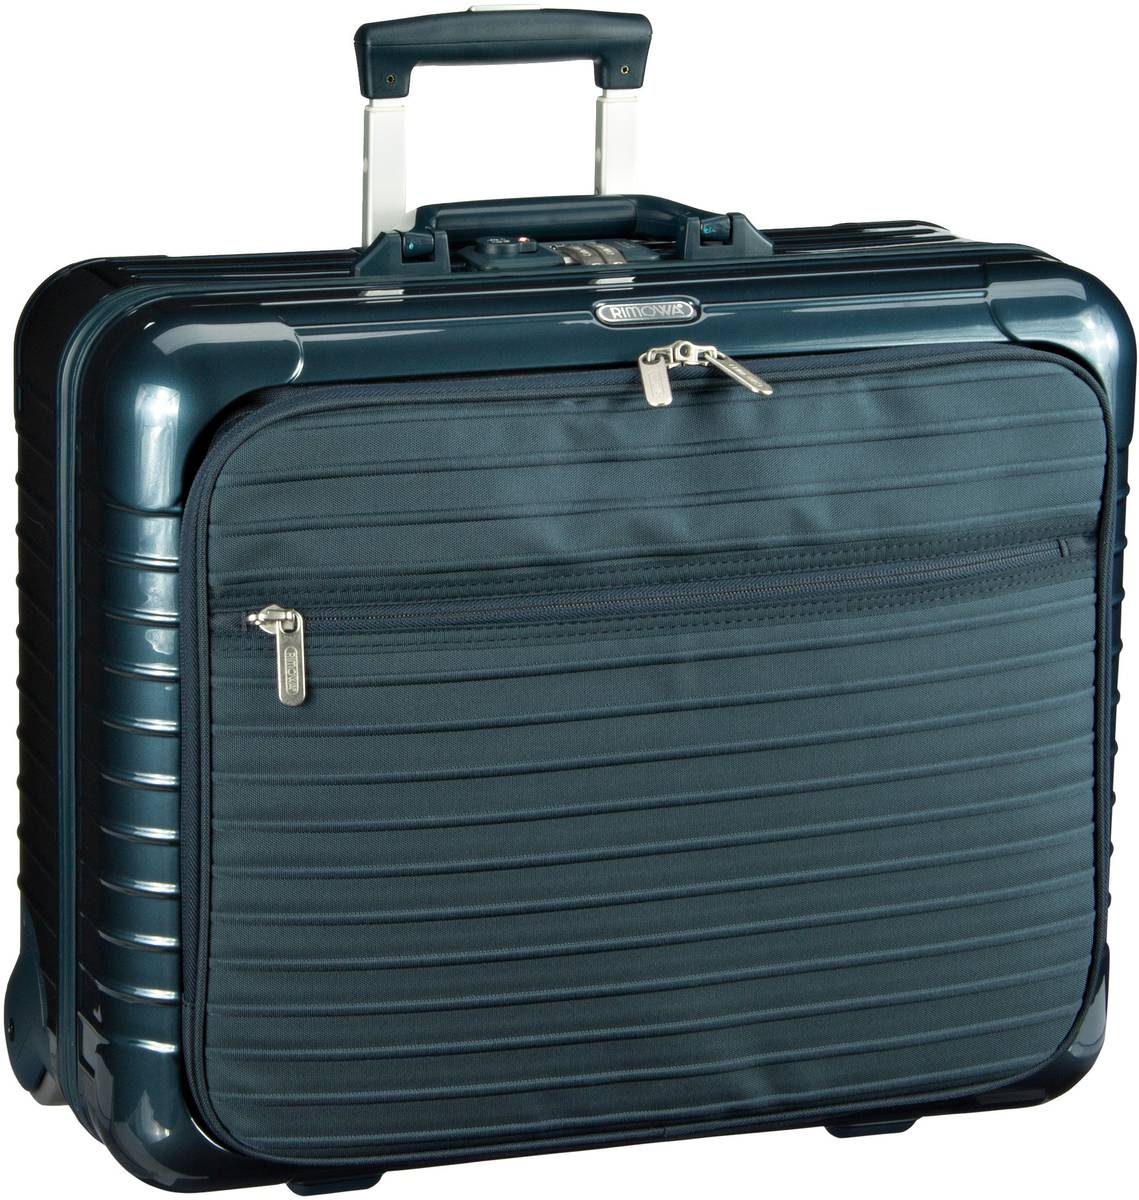 rimowa salsa deluxe hybrid business trolley 50 preisvergleich preis ab 439 00 tasche. Black Bedroom Furniture Sets. Home Design Ideas